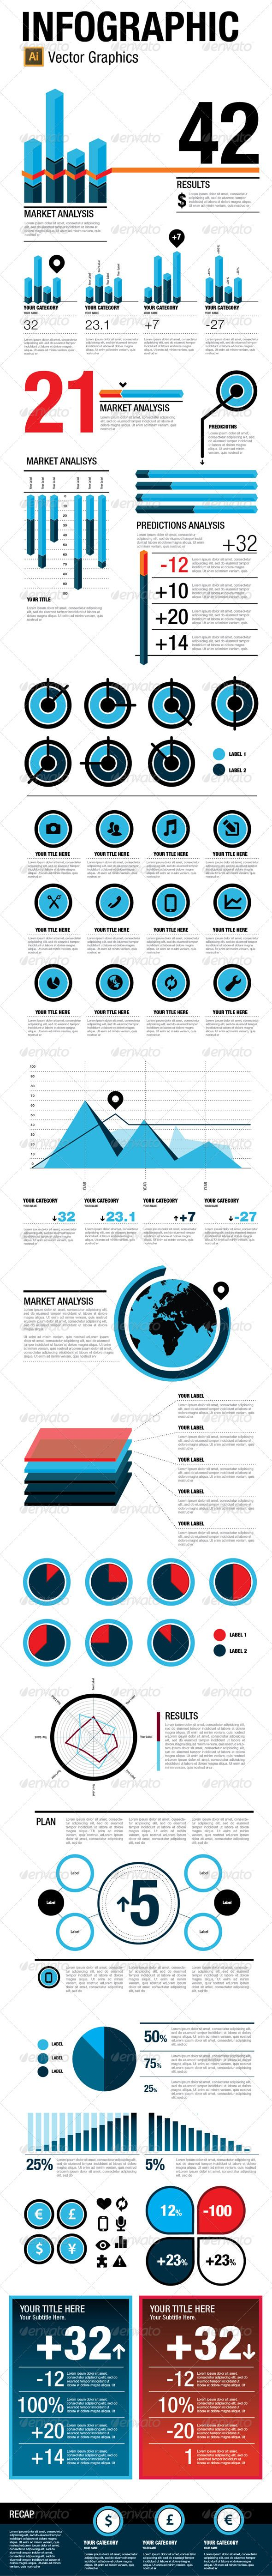 #Infographic - Infographics Download here: https://graphicriver.net/item/infographic/5415573?ref=alena994